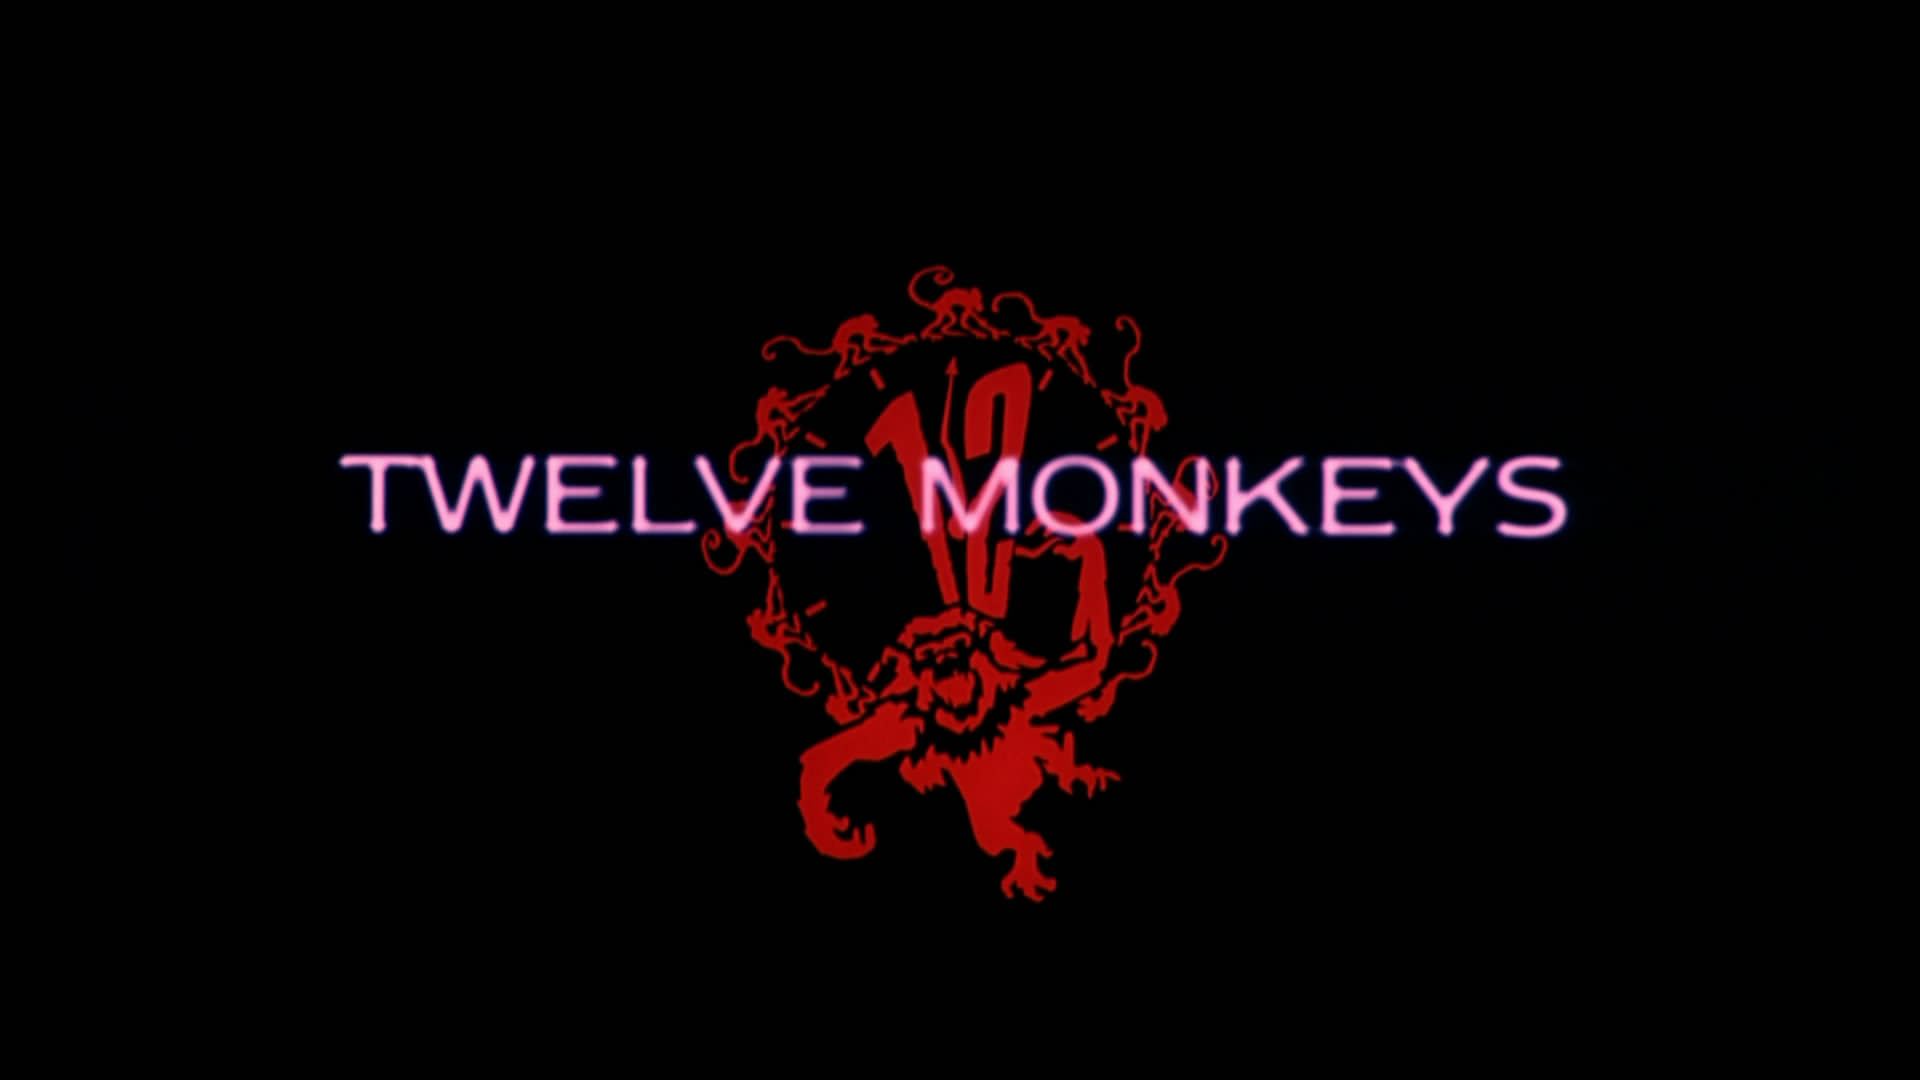 12 Monkeys by Terry Gilliam [1995, Full Movie]